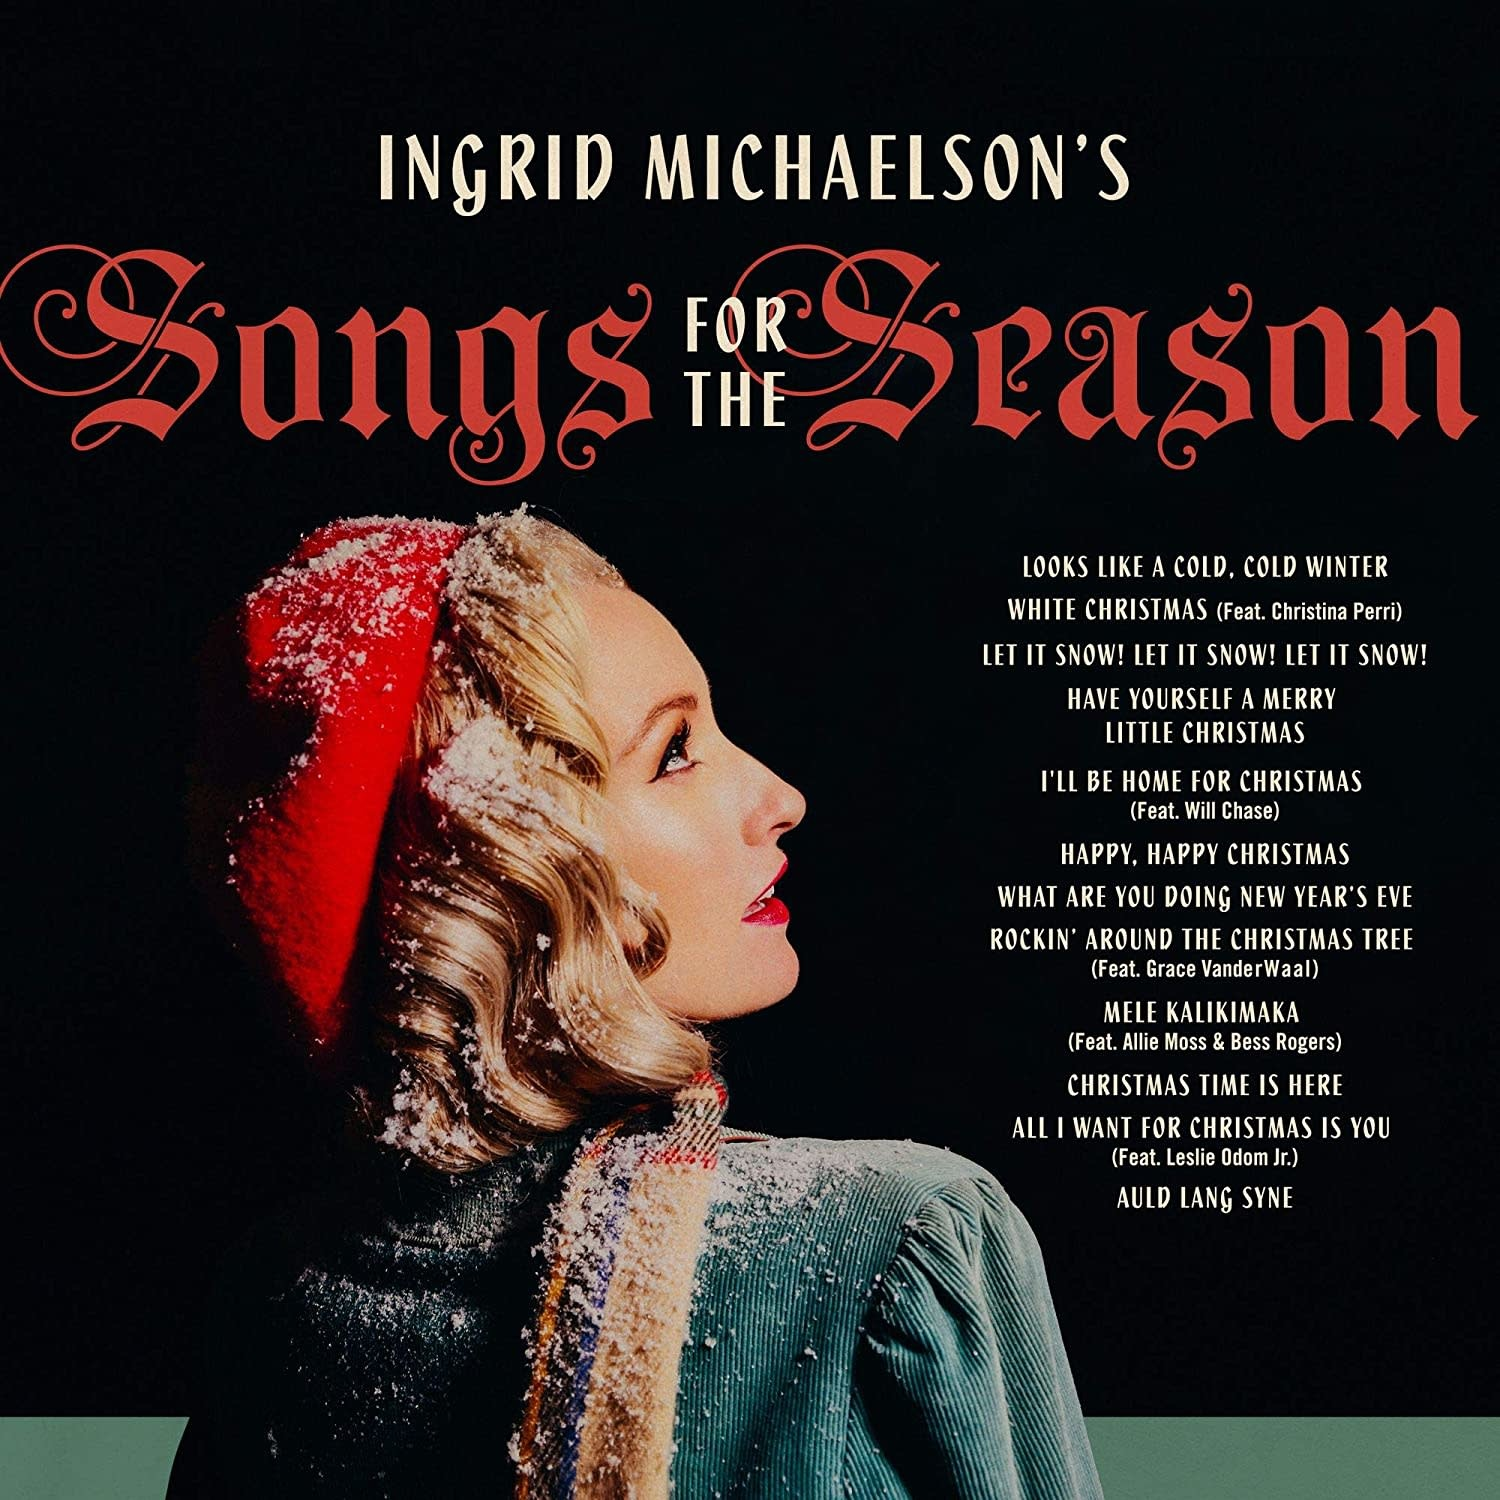 Ingrid Michaelson ‎– Ingrid Michaelson's Songs For The Season